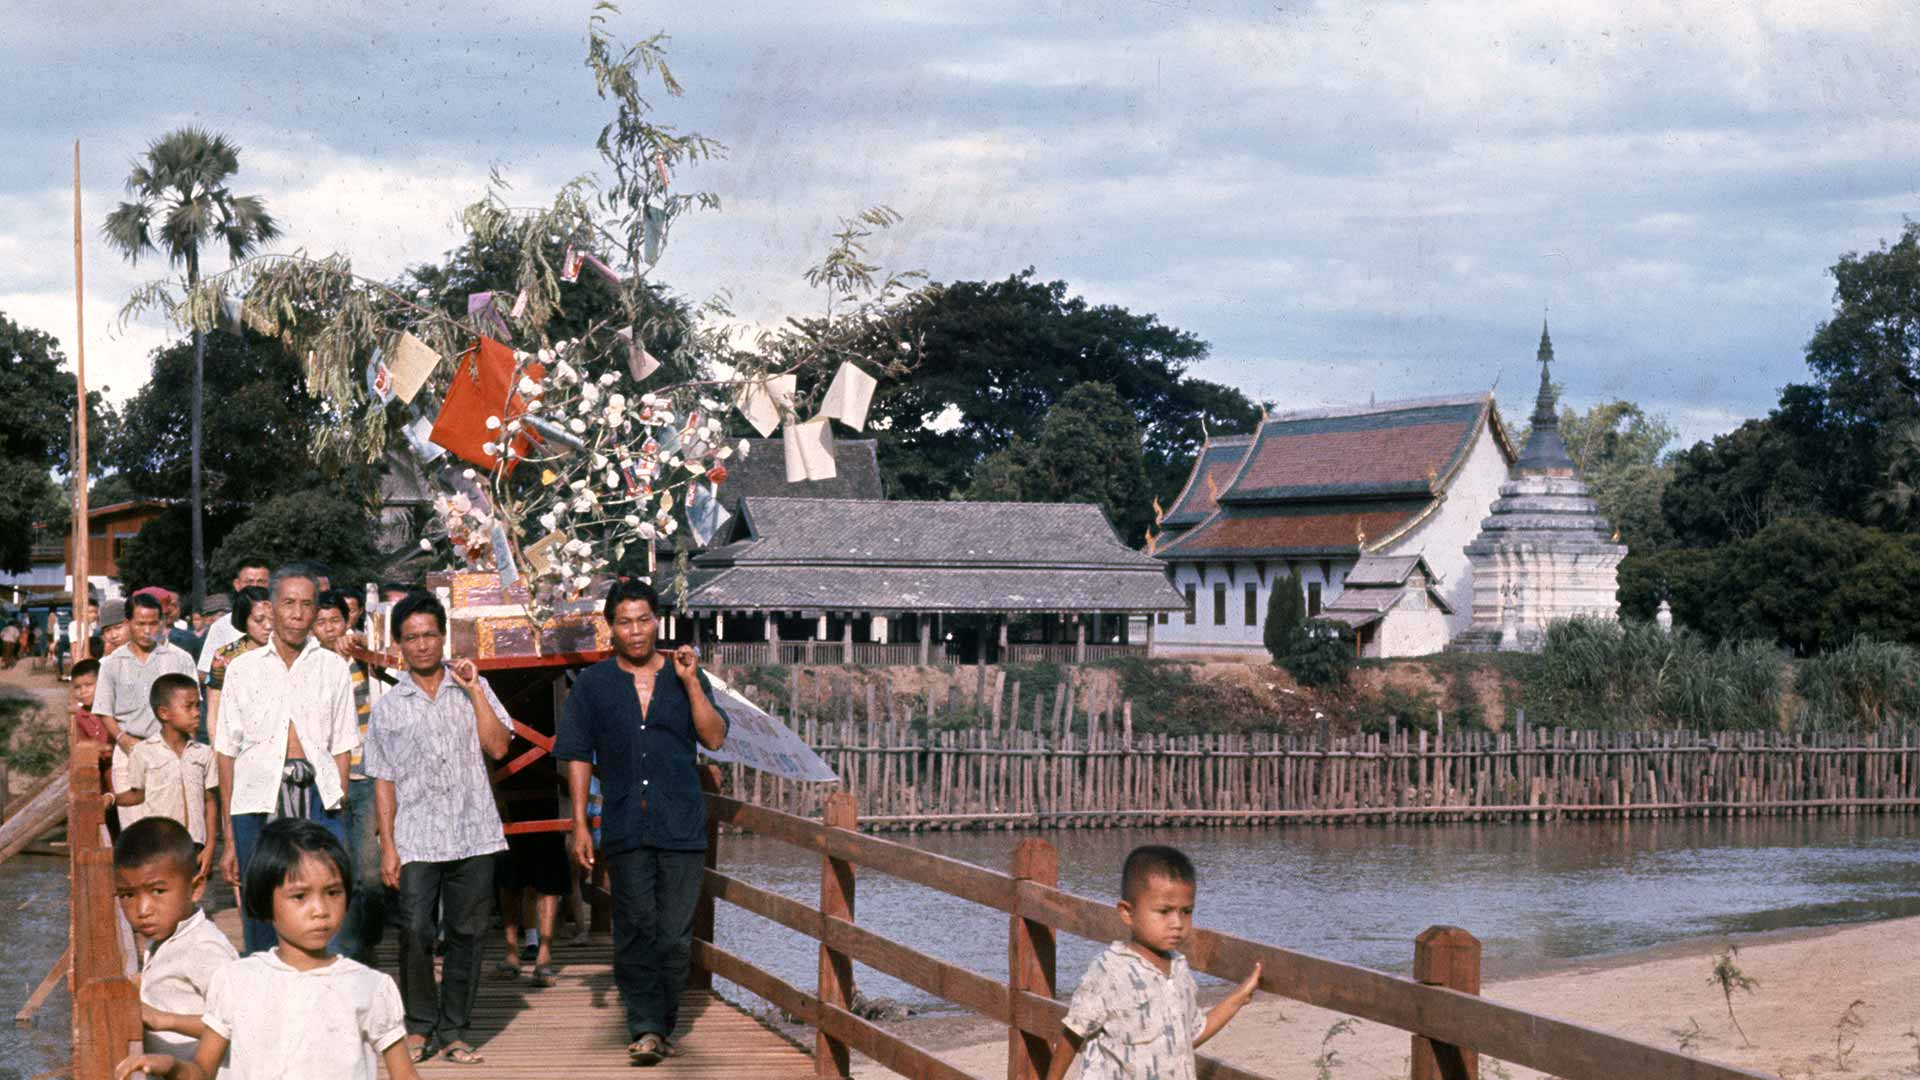 Men carry a large decorated structure using long wood poles